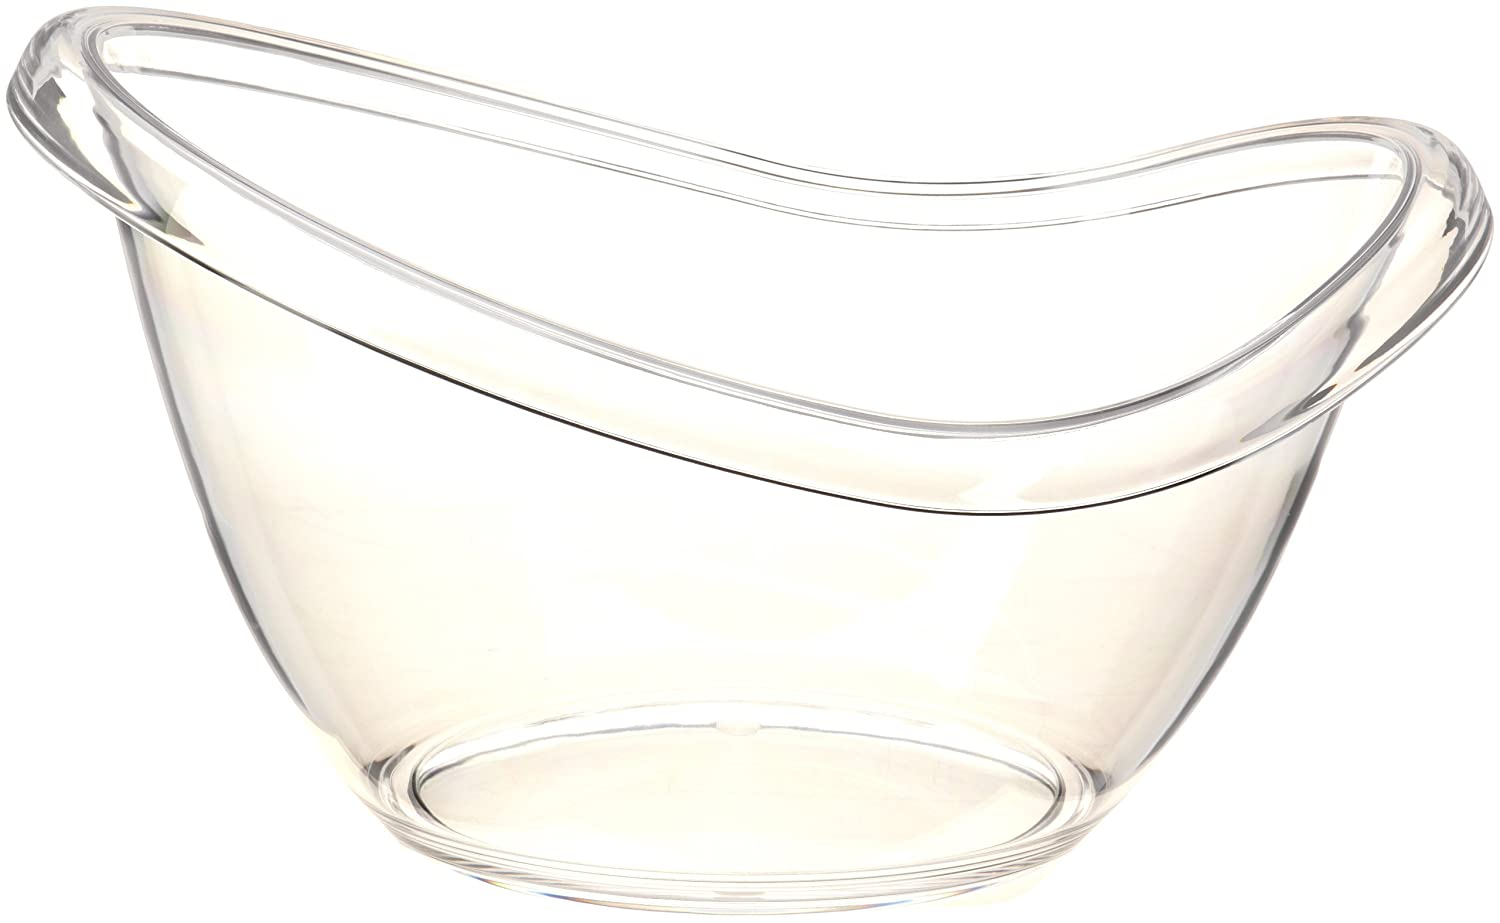 Prodyne 17421 Big Bath Party Tub, Clear AB-19